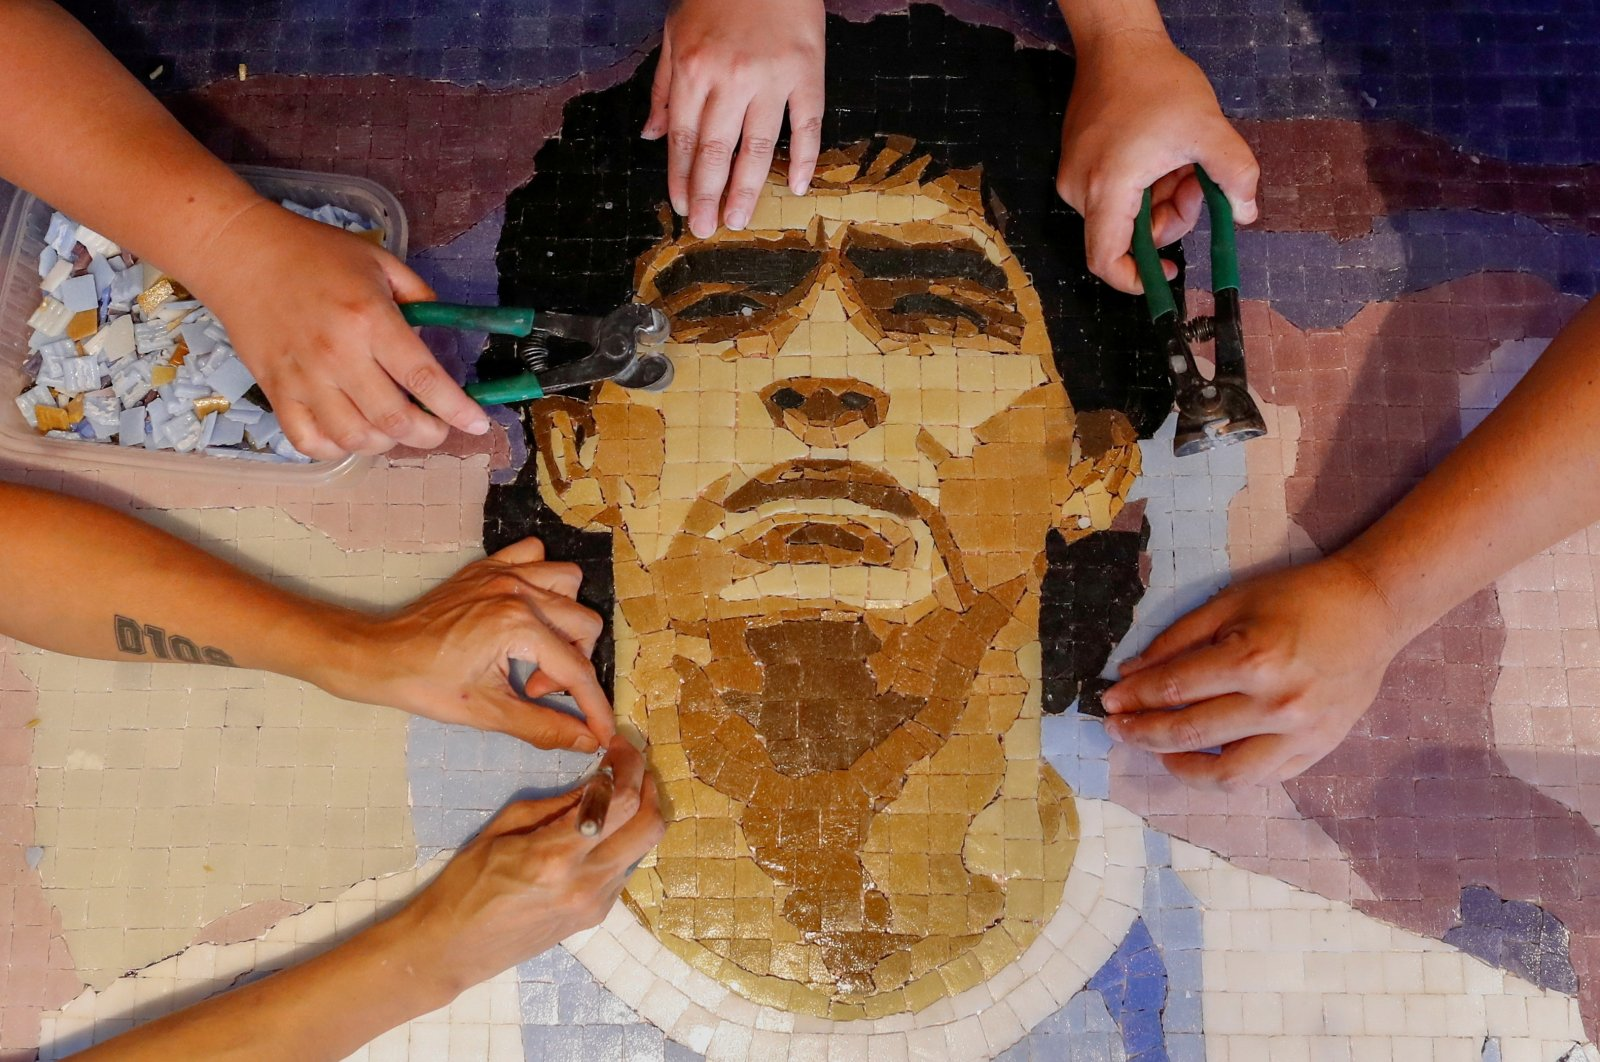 Members of the cultural organization Comando Maradona, prepare a mosaic as a homage to late Argentine football icon Diego Armando Maradona, at their workshop in Buenos Aires, Argentina Feb. 24, 2021. (Reuters Photo)